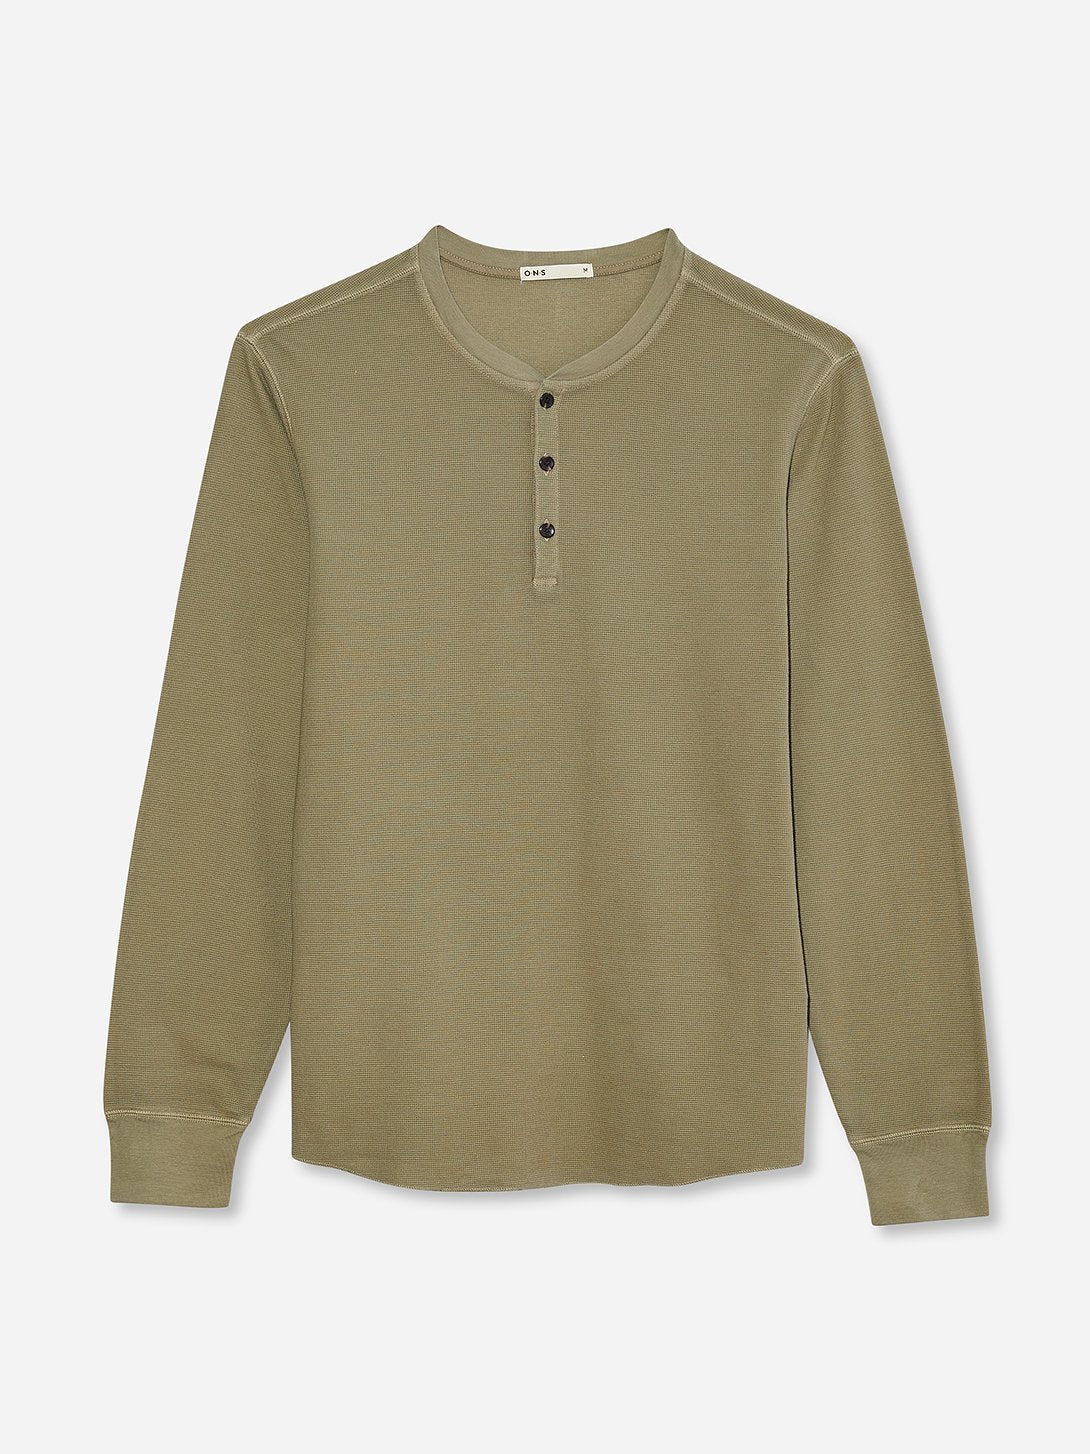 black friday deals ONS Clothing Men's COURT WAFFLE HENLEY Pre-shrunk Cotton in LIGHT OLIVE GREEN Pima Cotton